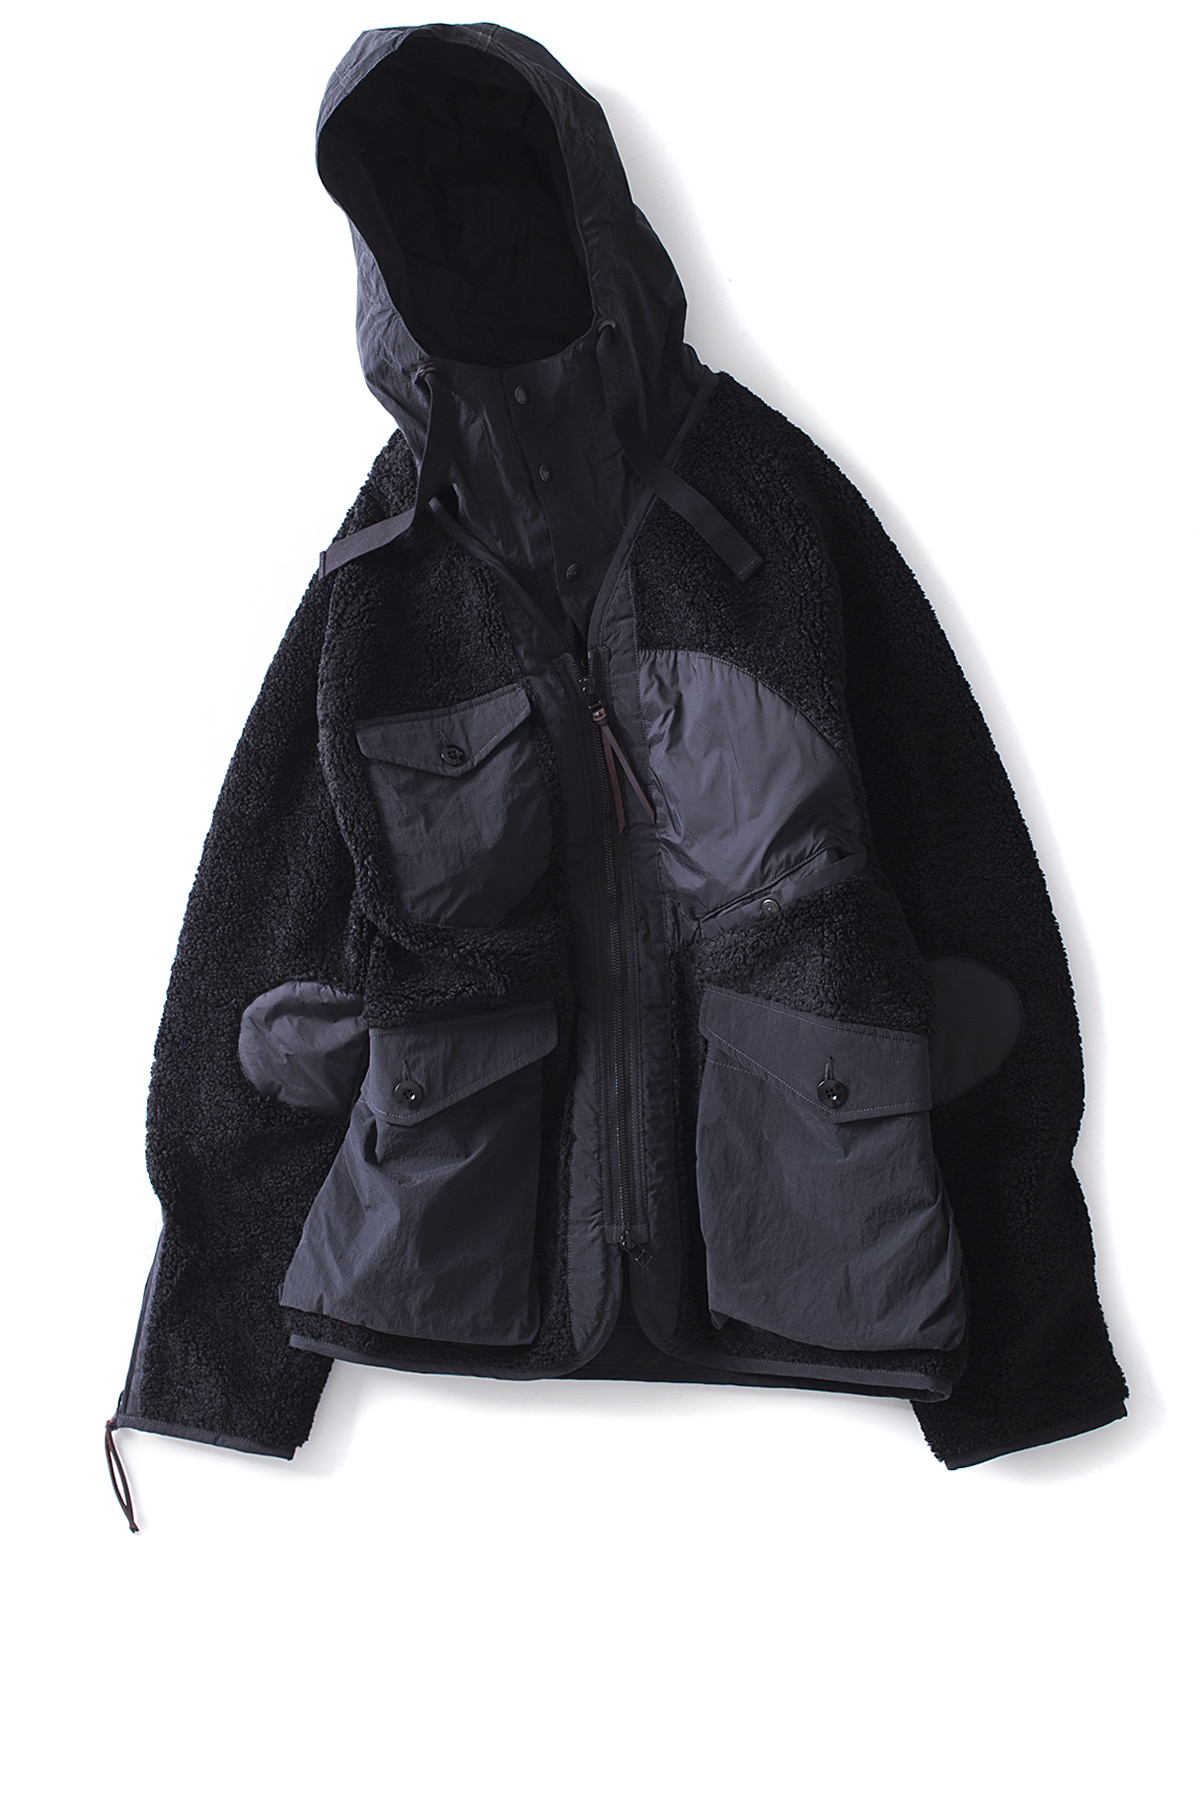 Eastlogue : Traveler Jacket (Black)